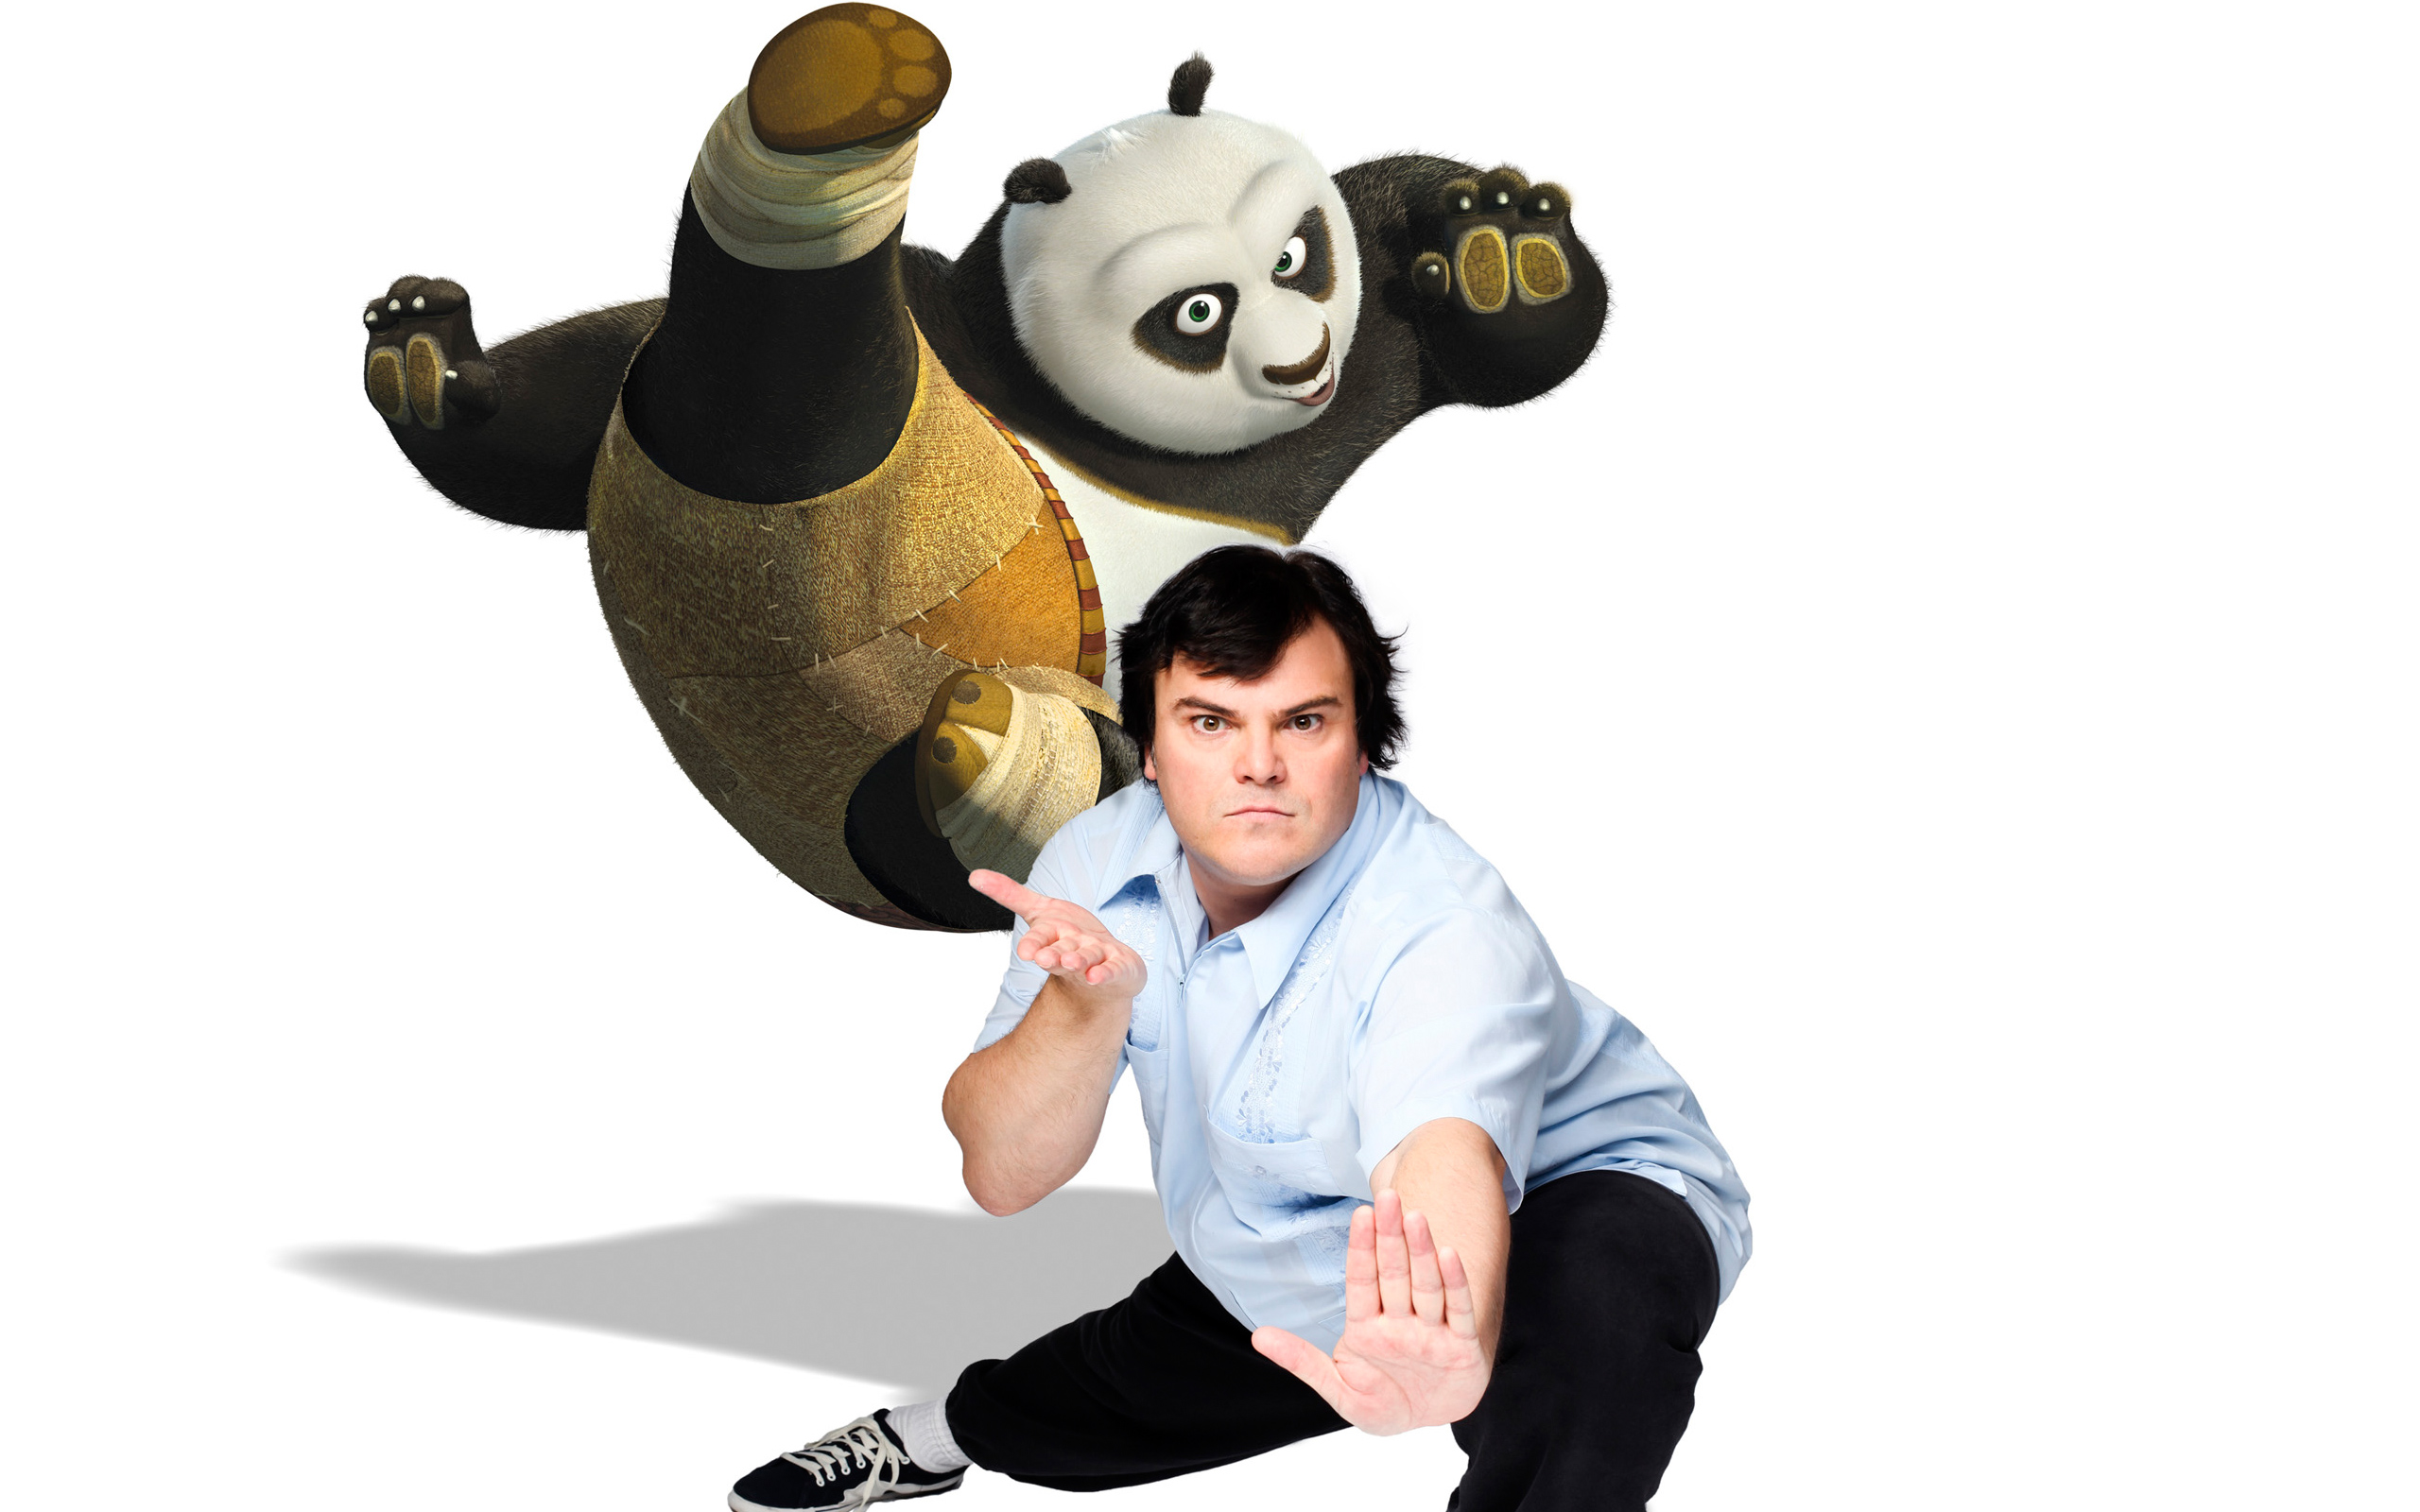 Jack Black as Panda 149.86 Kb